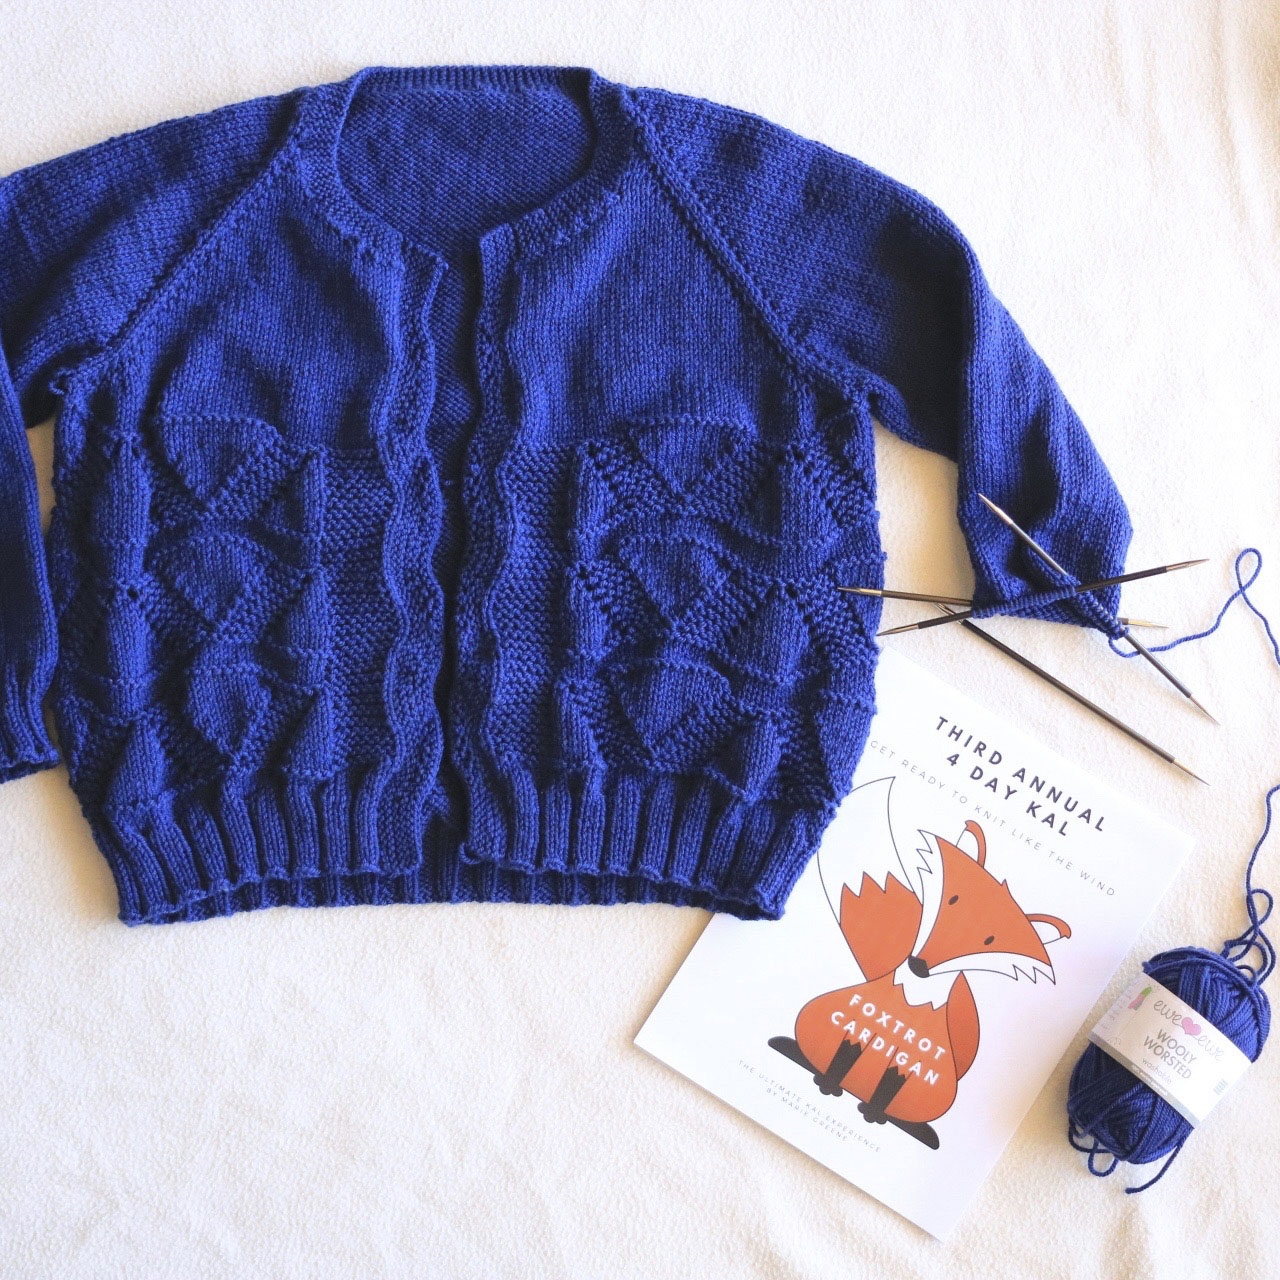 Foxtrot Cardigan using Wooly Worsted yarn